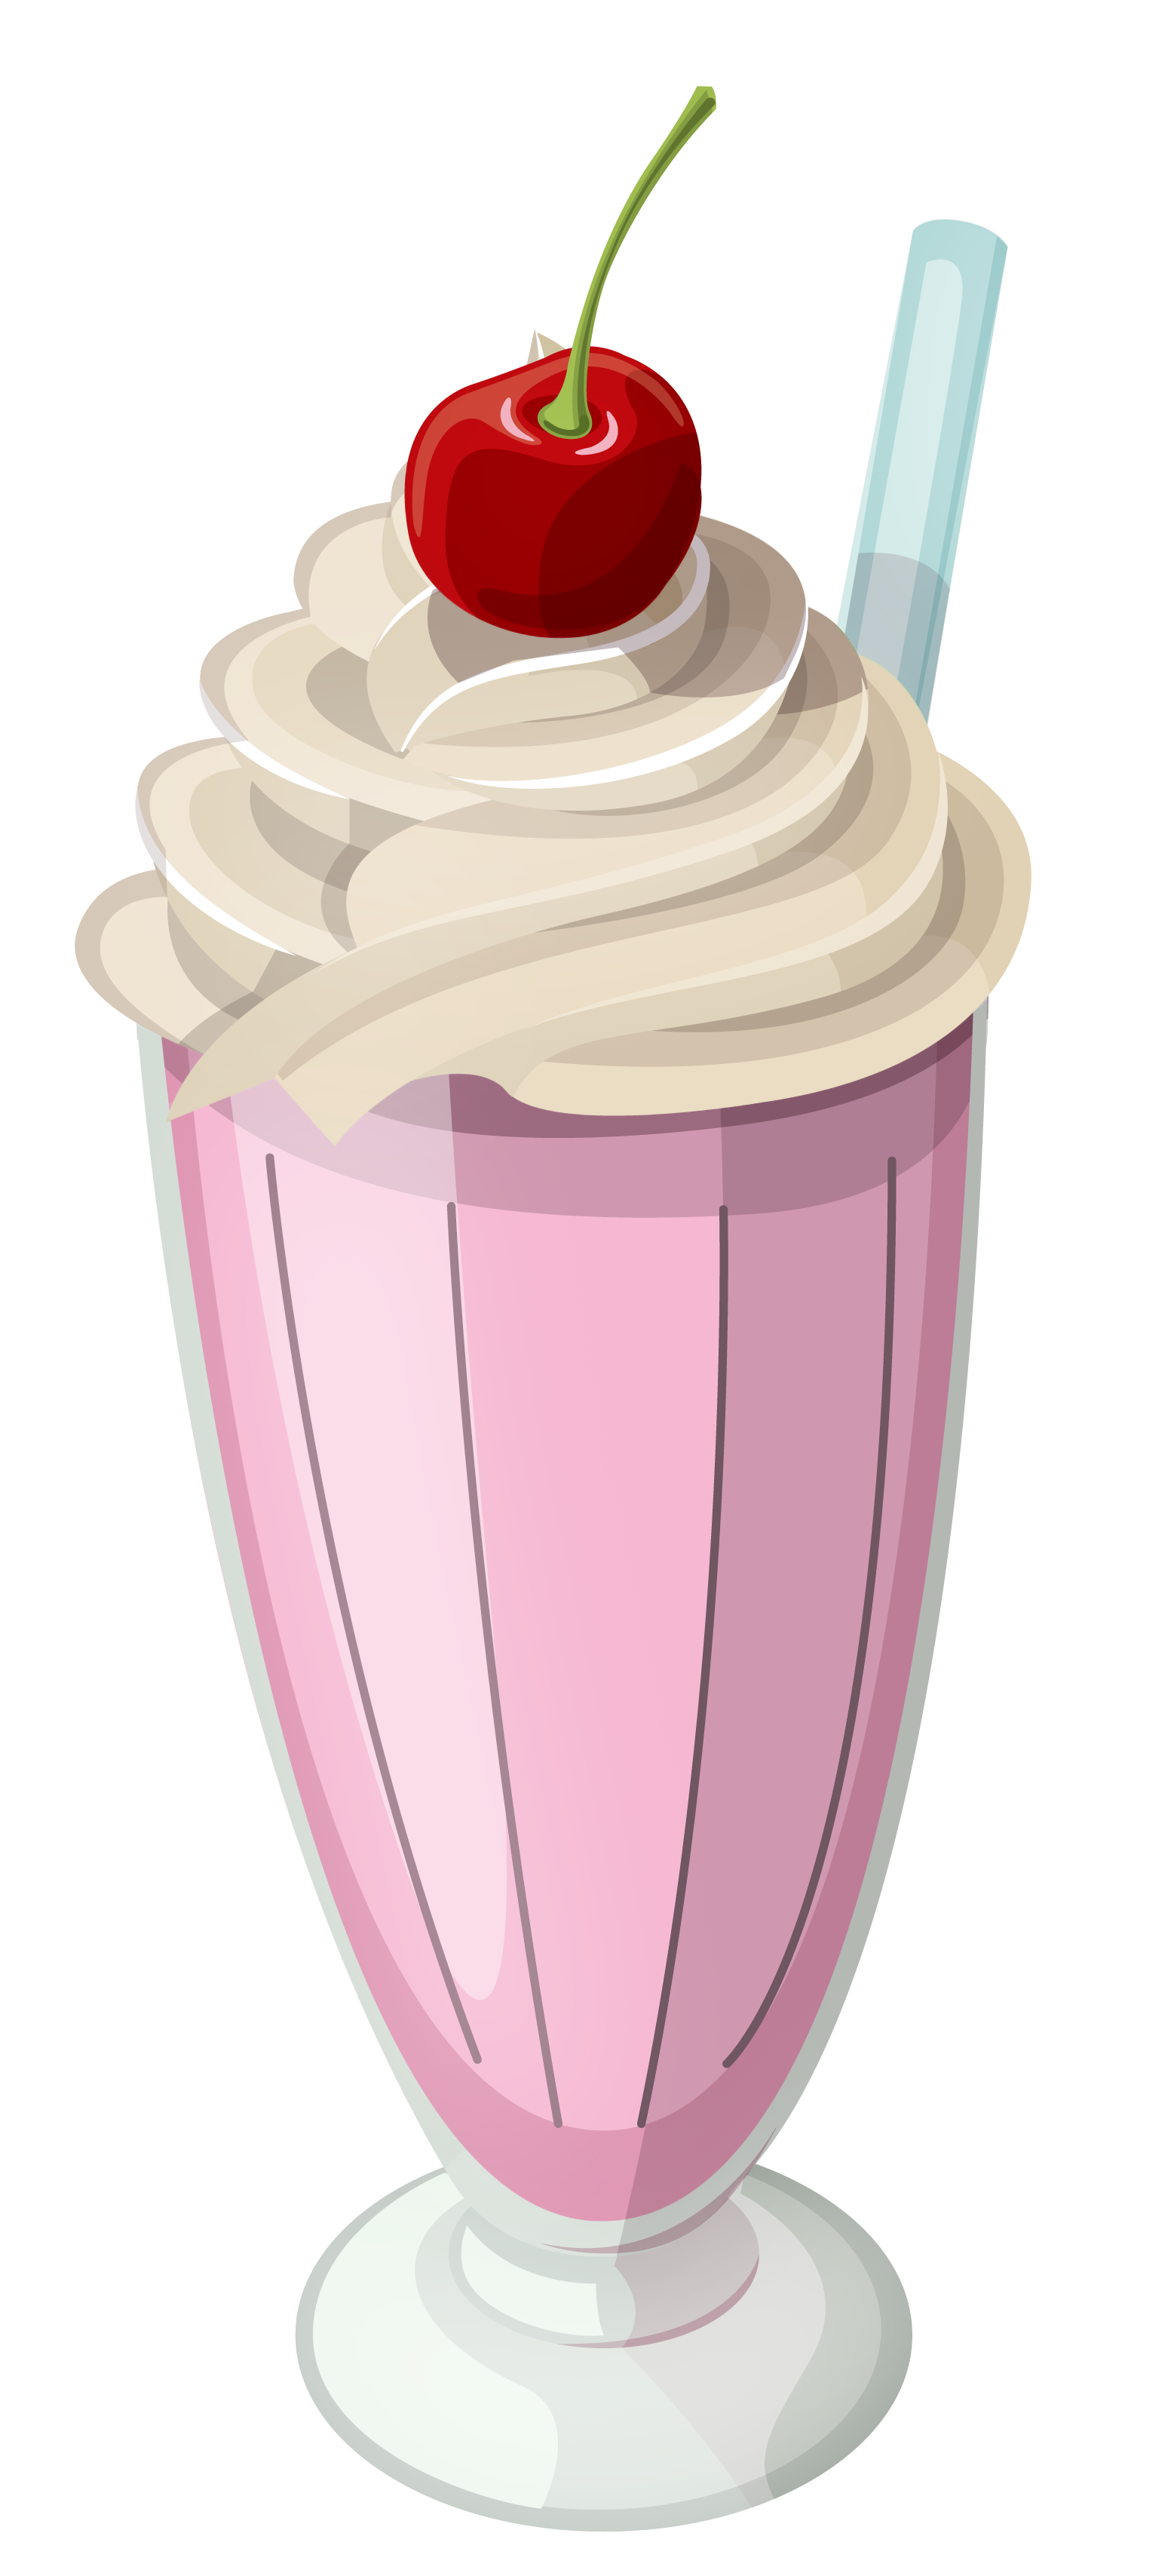 svg free library Mad momunity pinterest recipes. Milkshake clipart tall glass.